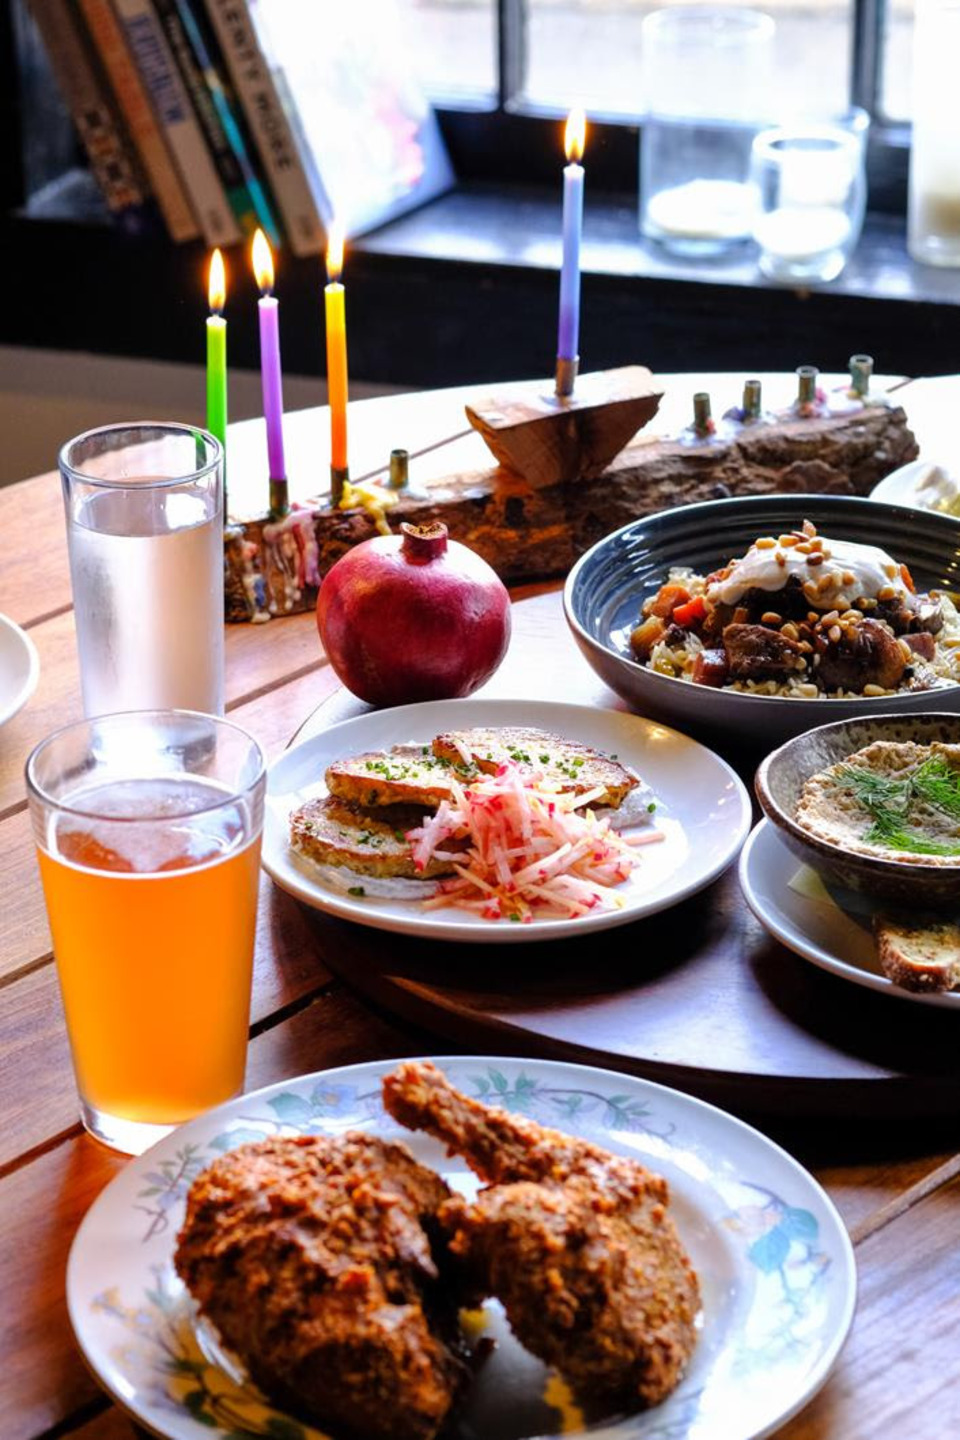 Butcher & Bee and The 404 Kitchen Have Your Hanukkah Meal Needs Covered